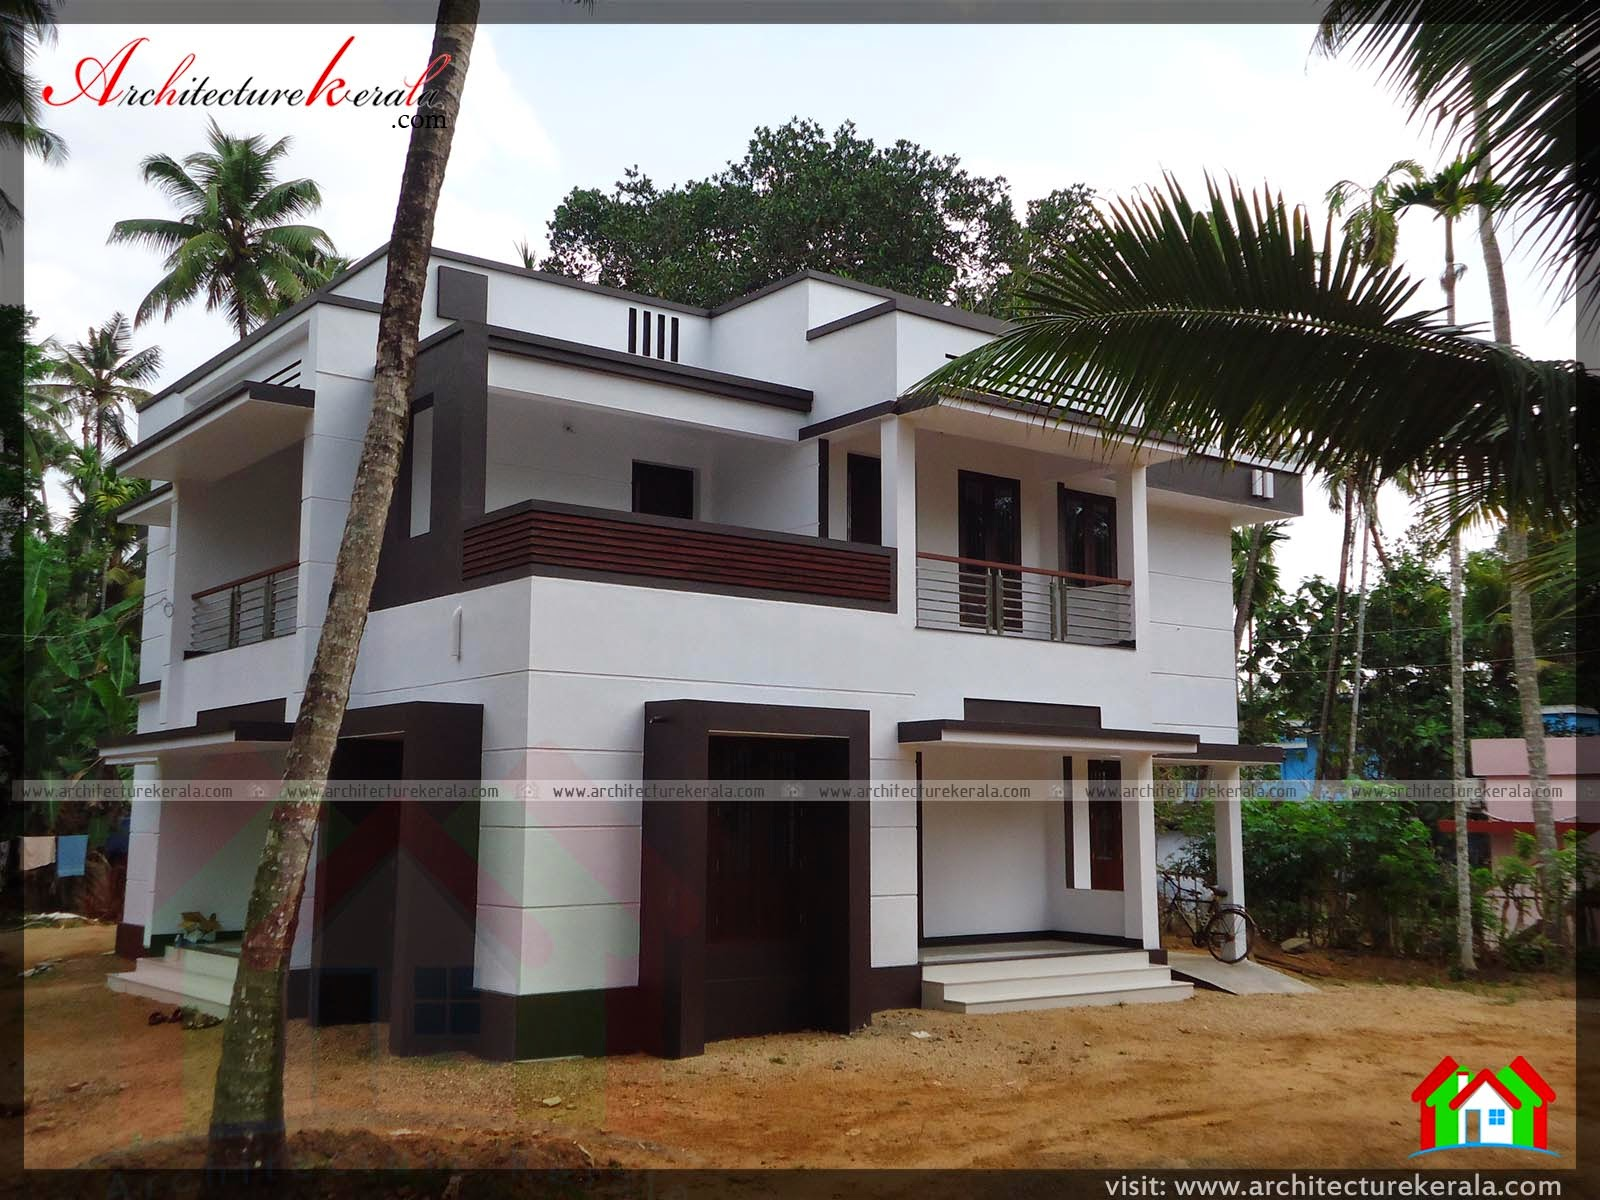 Photo of an contemporary style house architecture kerala Contemporary style house